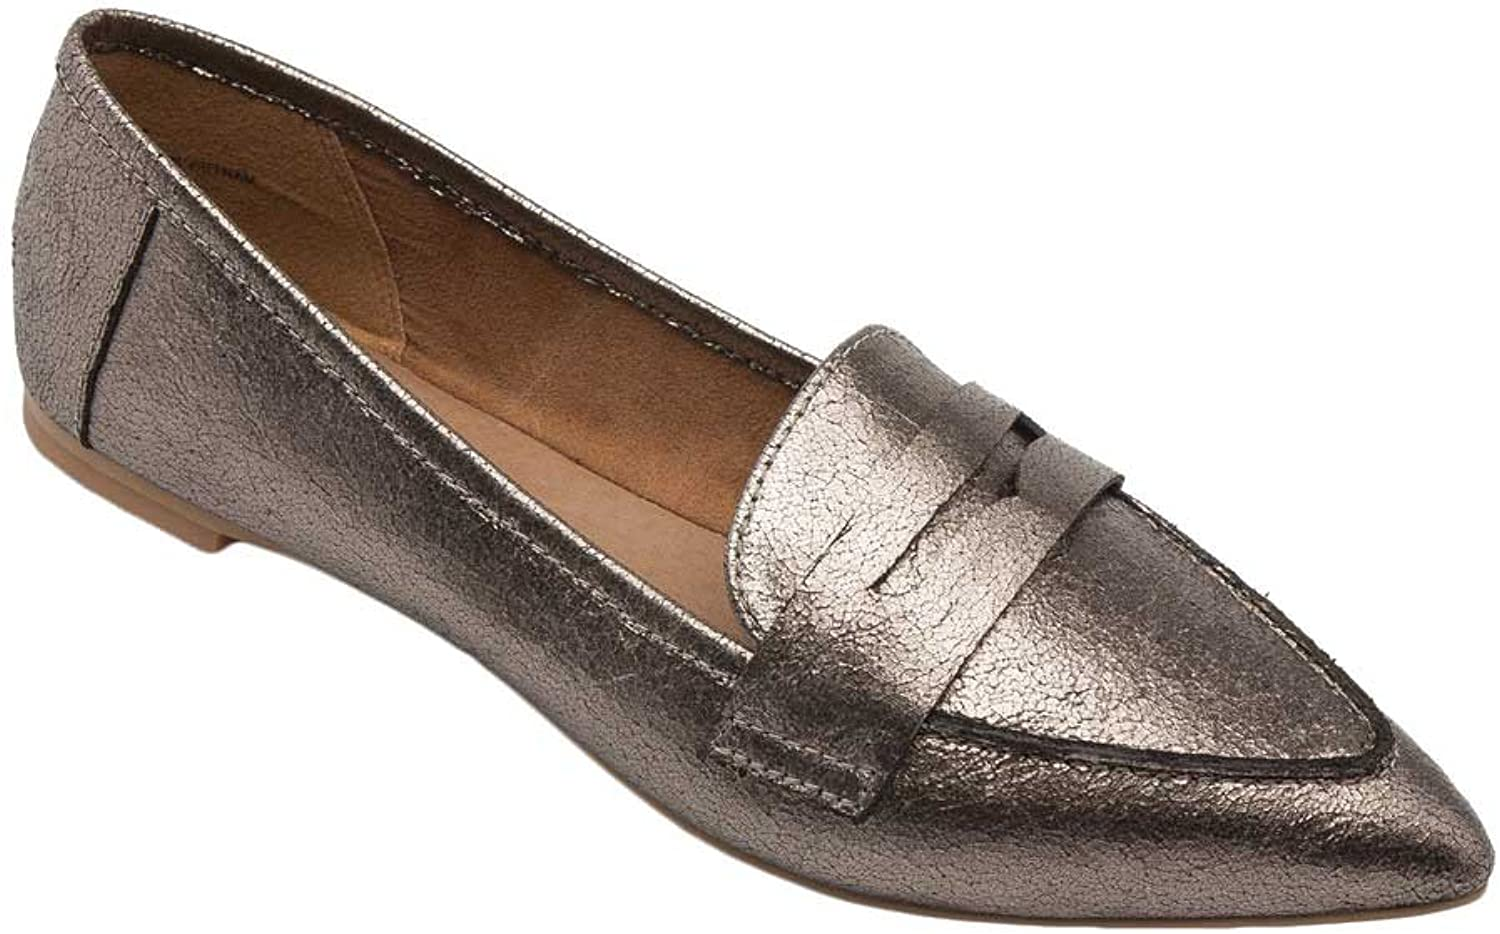 Pic Pay Margo Women's Flats - Pointy Toe Penny Loafer Pewter Metallic PU 8.5M